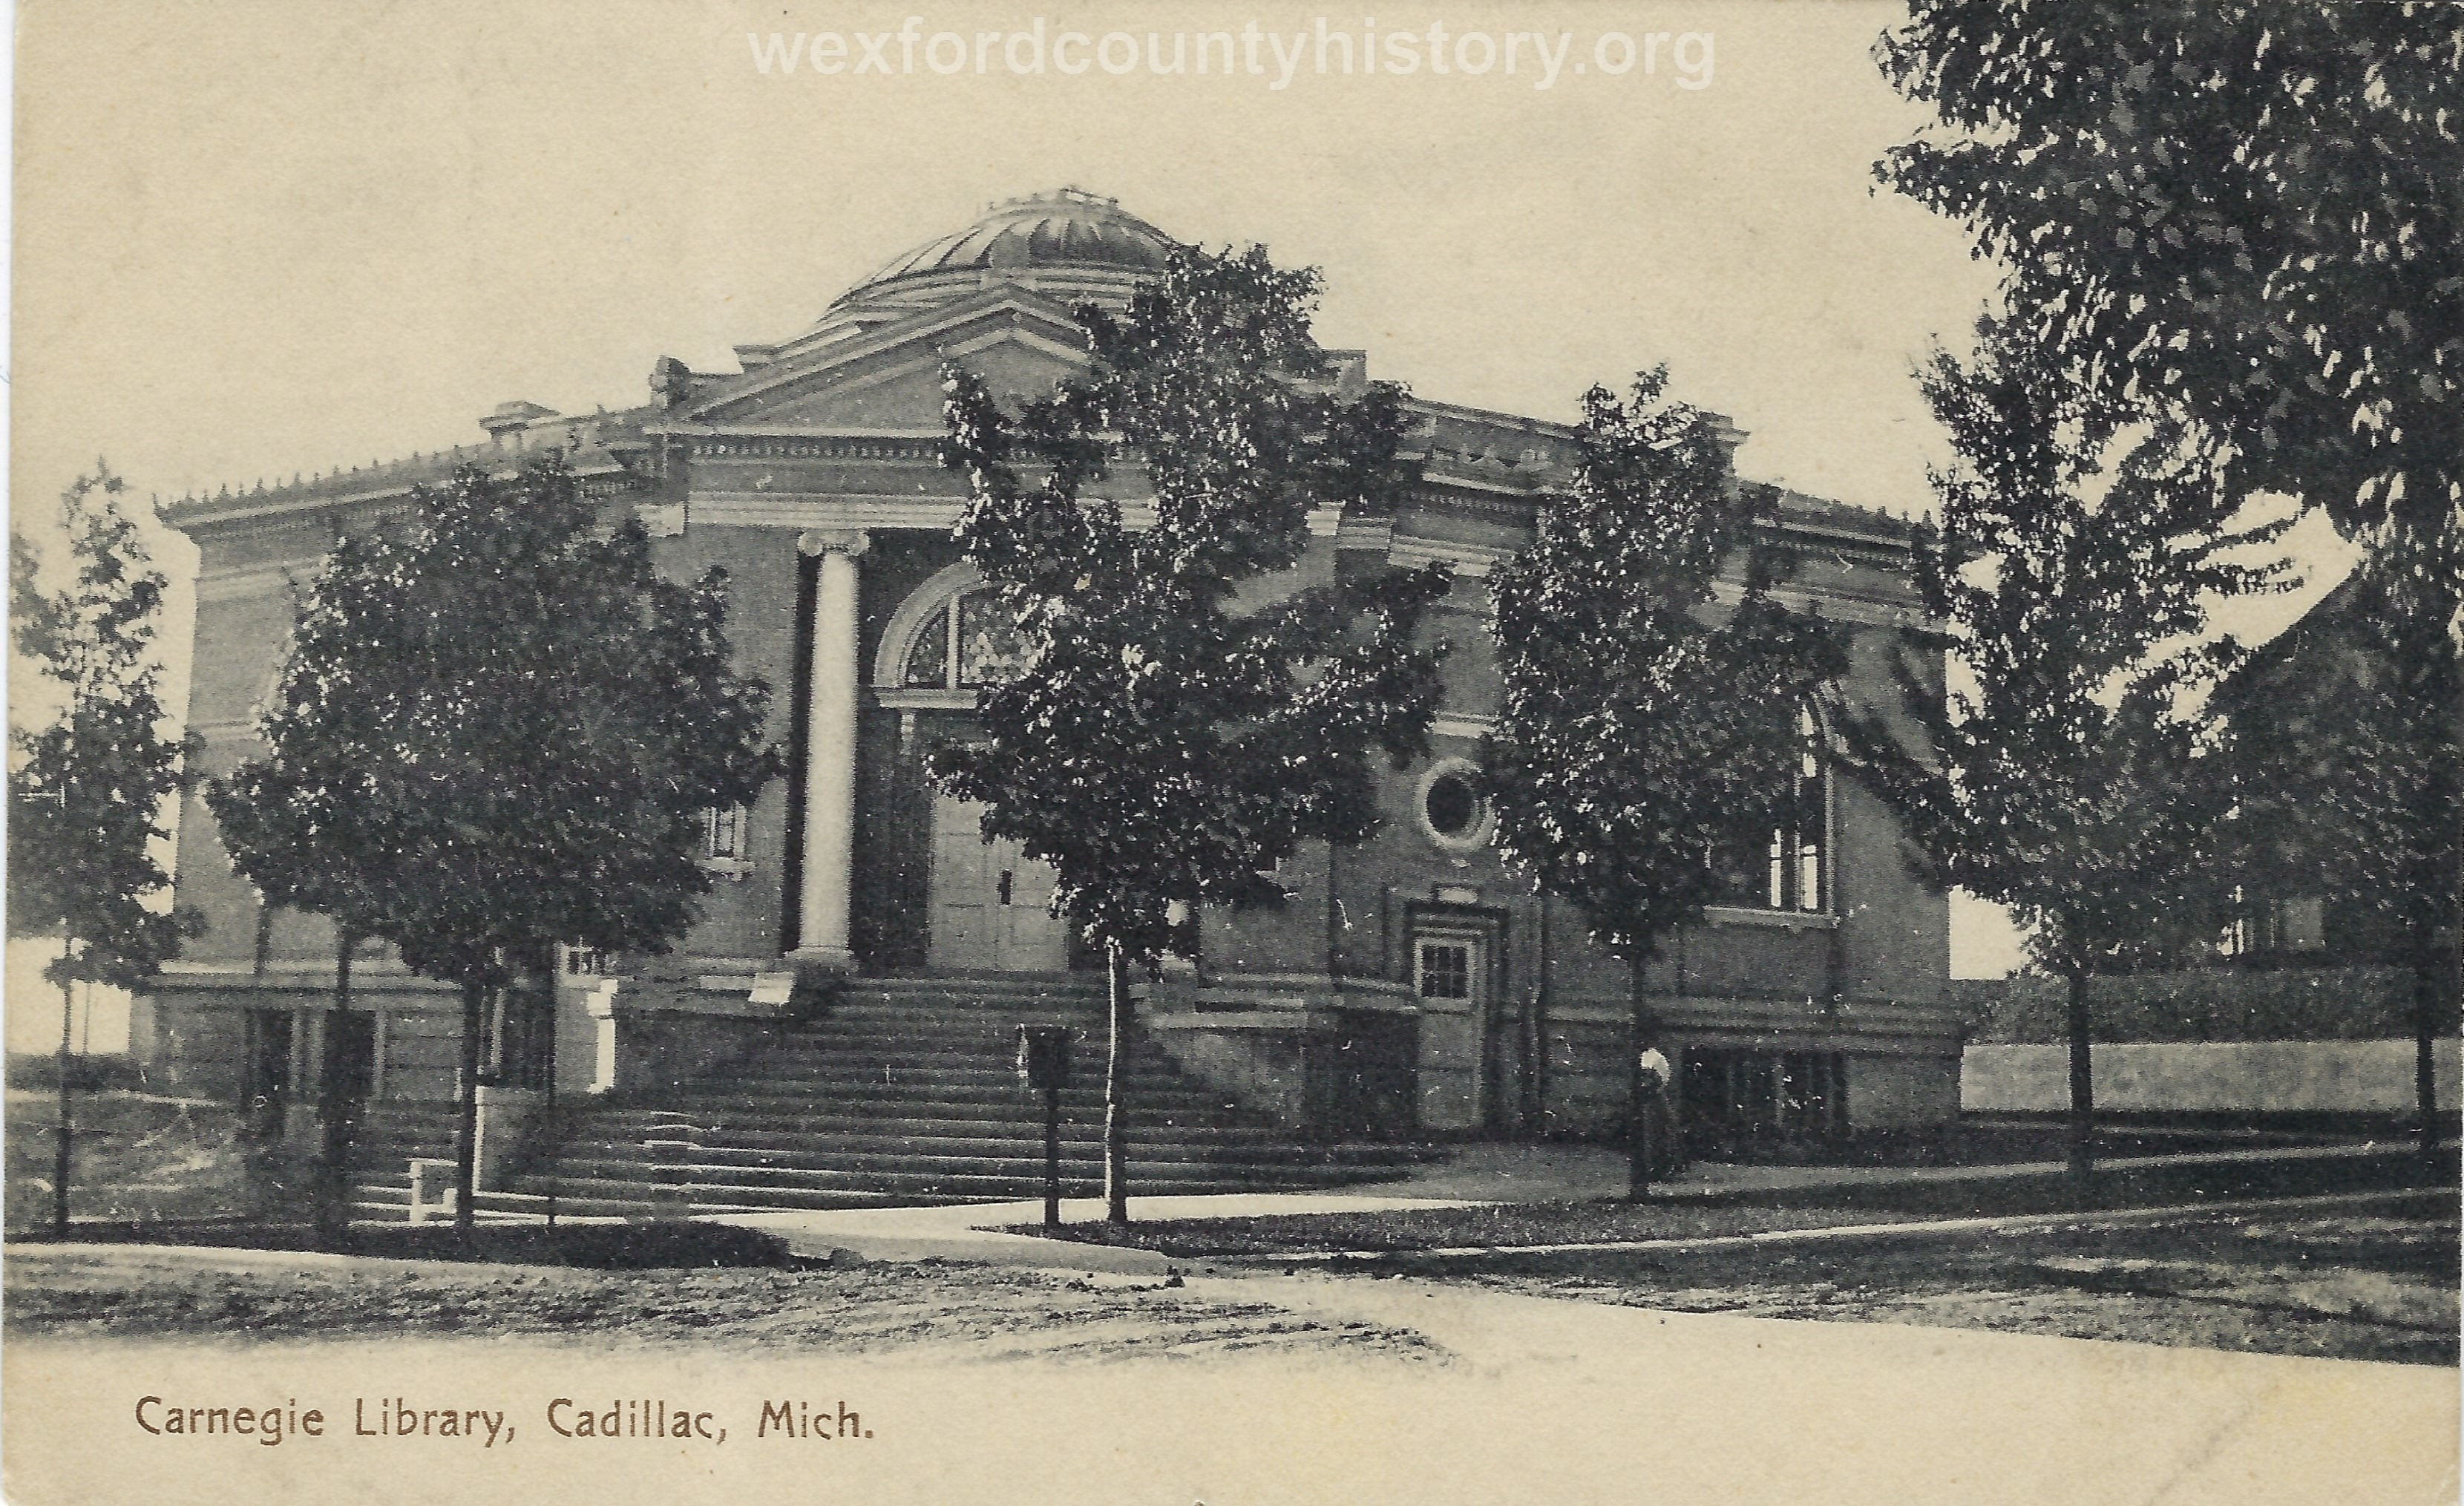 Wexford-County-Historical-Society-Building-Old-Public-Library-Historical-Society-127-Beech-Street-111